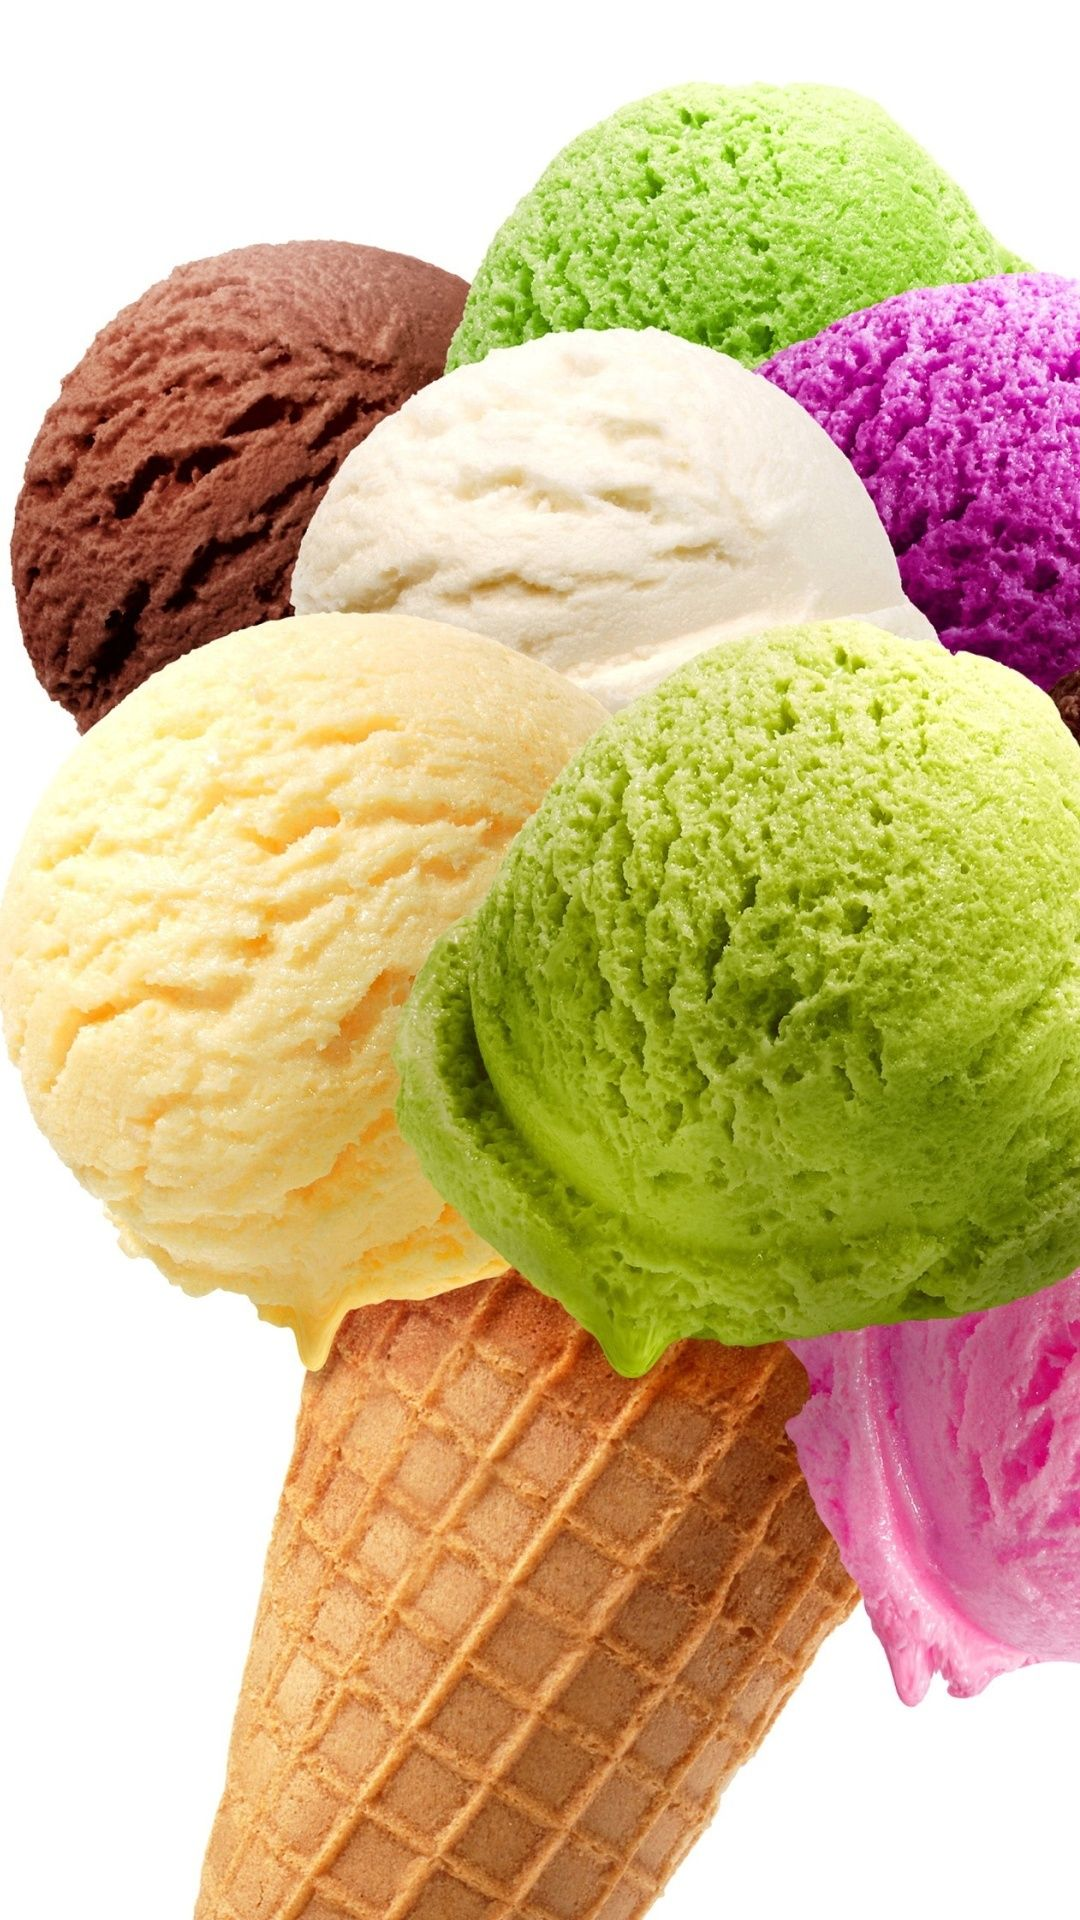 Colorful Ice Cream Wallpapers - Top Free Colorful Ice ...